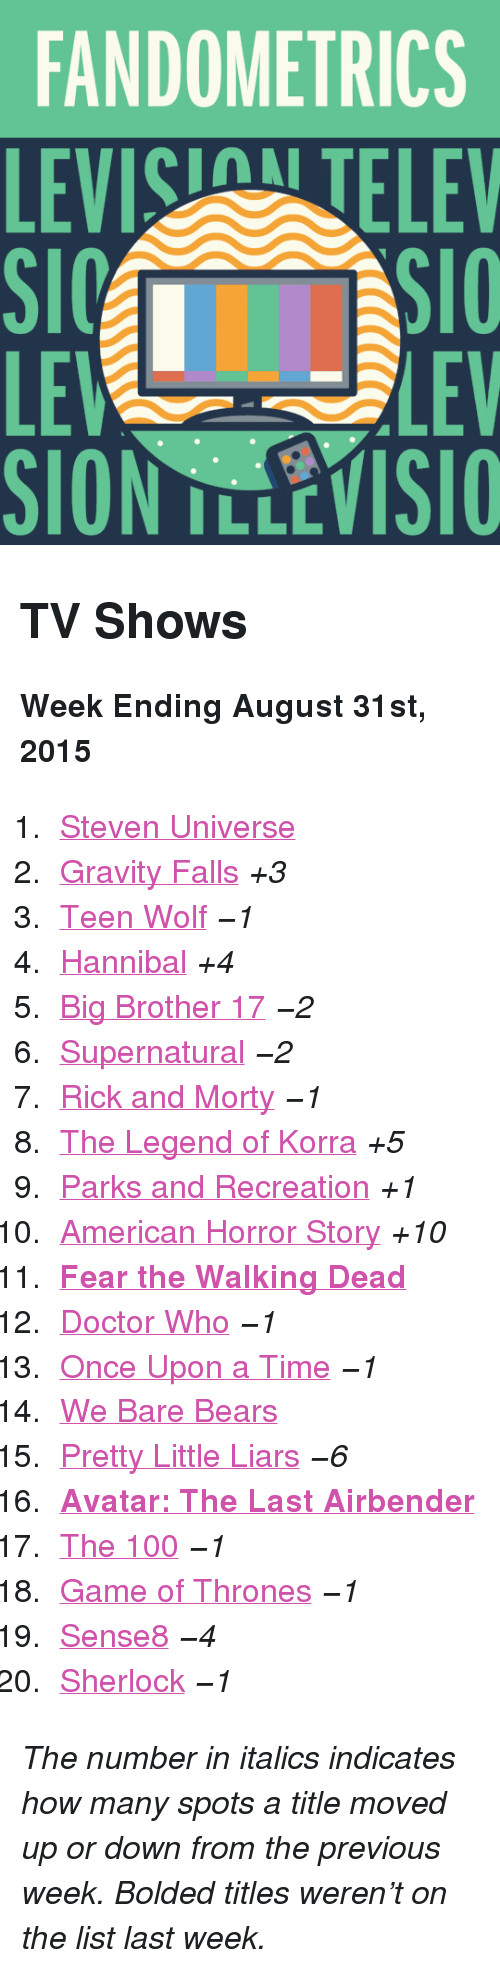 """Parks and Recreation: FANDOMETRICS  LEVIS TELEV  LE  SION TLLEVISIO  LEV <h2>TV Shows</h2><p><b>Week Ending August 31st, 2015</b></p><ol><li><a href=""""http://www.tumblr.com/search/steven%20universe"""">Steven Universe</a></li>  <li><a href=""""http://www.tumblr.com/search/gravity%20falls"""">Gravity Falls</a><i>+3</i></li>  <li><a href=""""http://www.tumblr.com/search/teen%20wolf"""">Teen Wolf</a><i>−1</i></li>  <li><a href=""""http://www.tumblr.com/search/hannibal"""">Hannibal</a><i>+4</i></li>  <li><a href=""""http://www.tumblr.com/search/bb17"""">Big Brother 17</a><i>−2</i></li>  <li><a href=""""http://www.tumblr.com/search/supernatural"""">Supernatural</a><i>−2</i></li>  <li><a href=""""http://www.tumblr.com/search/rick%20and%20morty"""">Rick and Morty</a><i>−1</i></li>  <li><a href=""""http://www.tumblr.com/search/legend%20of%20korra"""">The Legend of Korra</a><i>+5</i></li>  <li><a href=""""http://www.tumblr.com/search/parks%20and%20recreation"""">Parks and Recreation</a><i>+1</i></li>  <li><a href=""""http://www.tumblr.com/search/american%20horror%20story"""">American Horror Story</a><i>+10</i></li>  <li><a href=""""http://www.tumblr.com/search/fear%20the%20walking%20dead""""><b>Fear the Walking Dead</b></a></li>  <li><a href=""""http://www.tumblr.com/search/doctor%20who"""">Doctor Who</a><i>−1</i></li>  <li><a href=""""http://www.tumblr.com/search/ouat"""">Once Upon a Time</a><i>−1</i></li>  <li><a href=""""http://www.tumblr.com/search/we%20bare%20bears"""">We Bare Bears</a></li>  <li><a href=""""http://www.tumblr.com/search/pretty%20little%20liars"""">Pretty Little Liars</a><i>−6</i></li>  <li><a href=""""http://www.tumblr.com/search/atla""""><b>Avatar: The Last Airbender</b></a></li>  <li><a href=""""http://www.tumblr.com/search/the%20100"""">The 100</a><i>−1</i></li>  <li><a href=""""http://www.tumblr.com/search/game%20of%20thrones"""">Game of Thrones</a><i>−1</i></li>  <li><a href=""""http://www.tumblr.com/search/sense8"""">Sense8</a><i>−4</i></li>  <li><a href=""""http://www.tumblr.com/search/sherlock"""">Sherlock</a><i>−1</i></li></ol><p><i>The number in italics indic"""